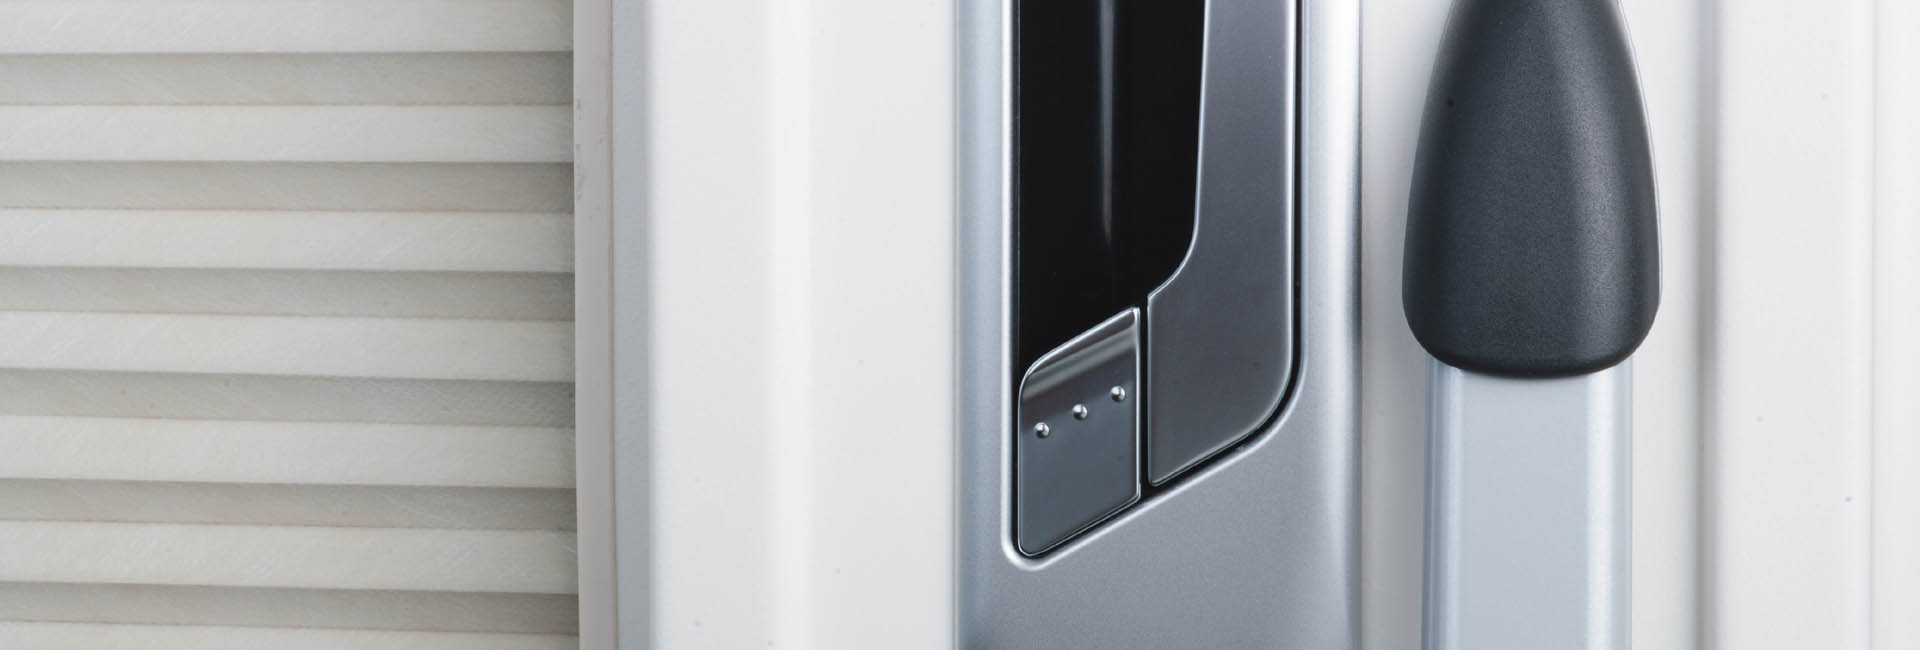 Retrofit Doors For Fully Integrated Driver Doors For All Rvs And